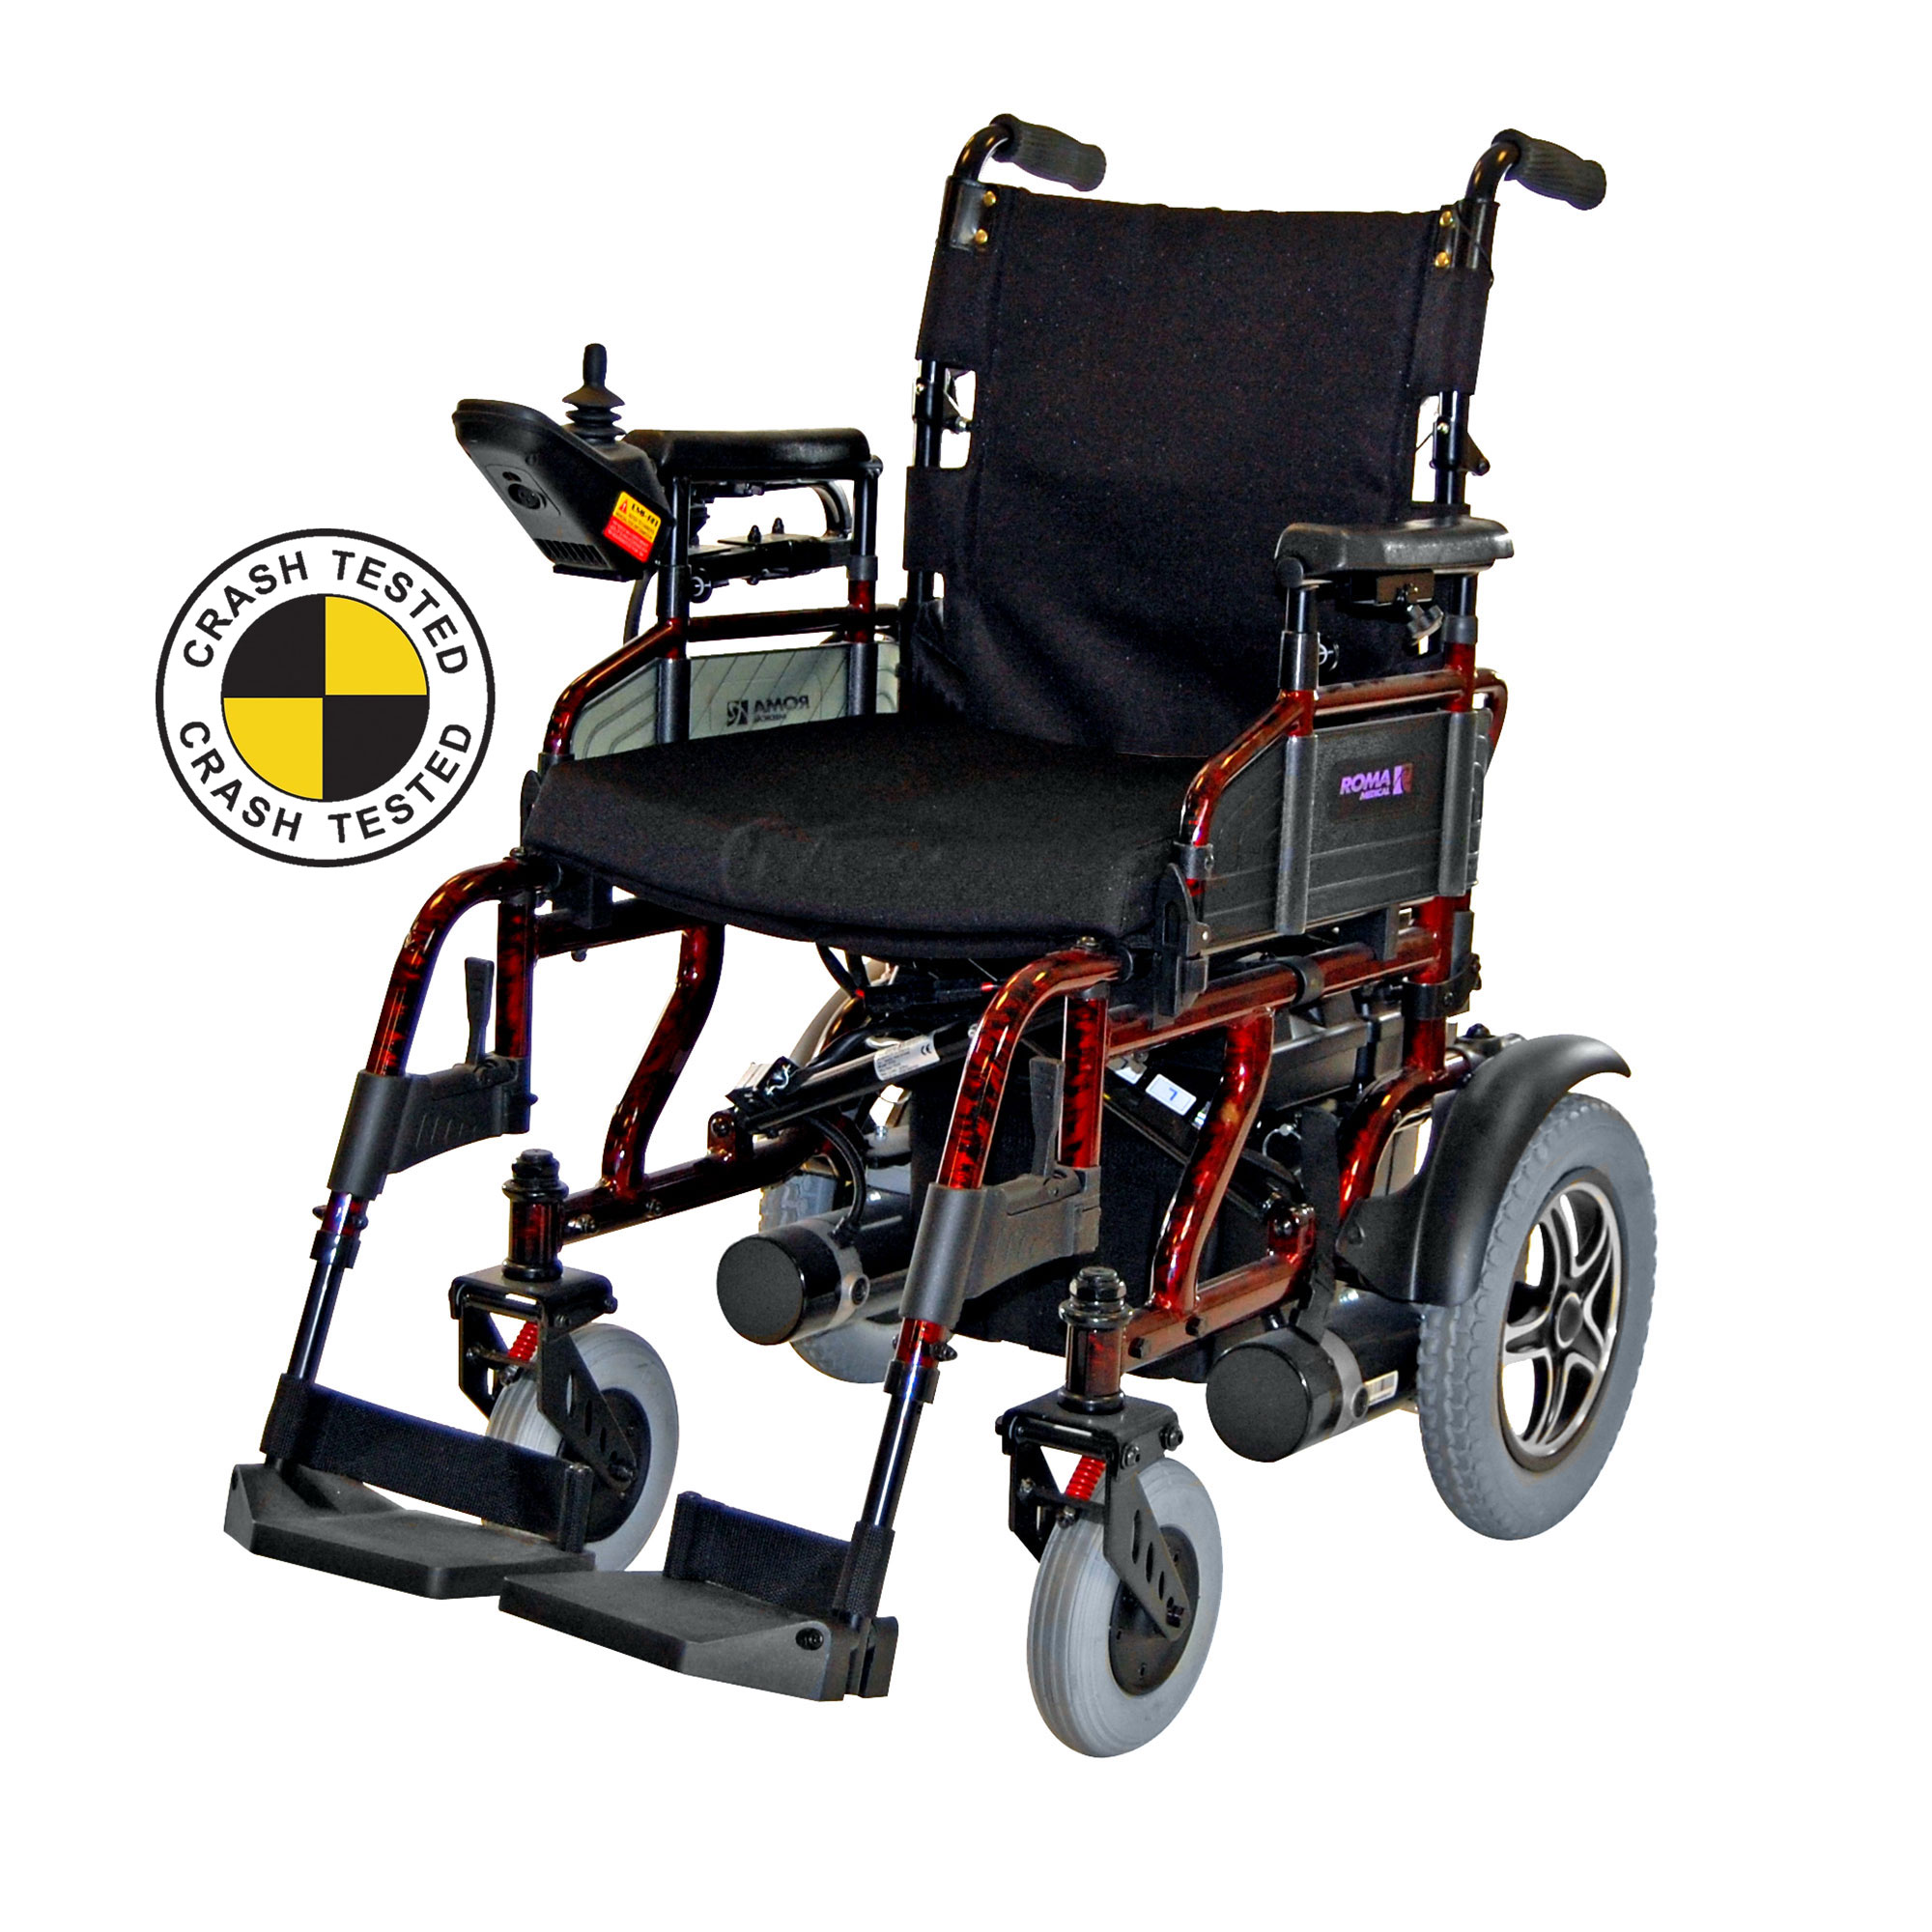 Sirocco Electric Wheelchair Delvered Next Day For Free UK